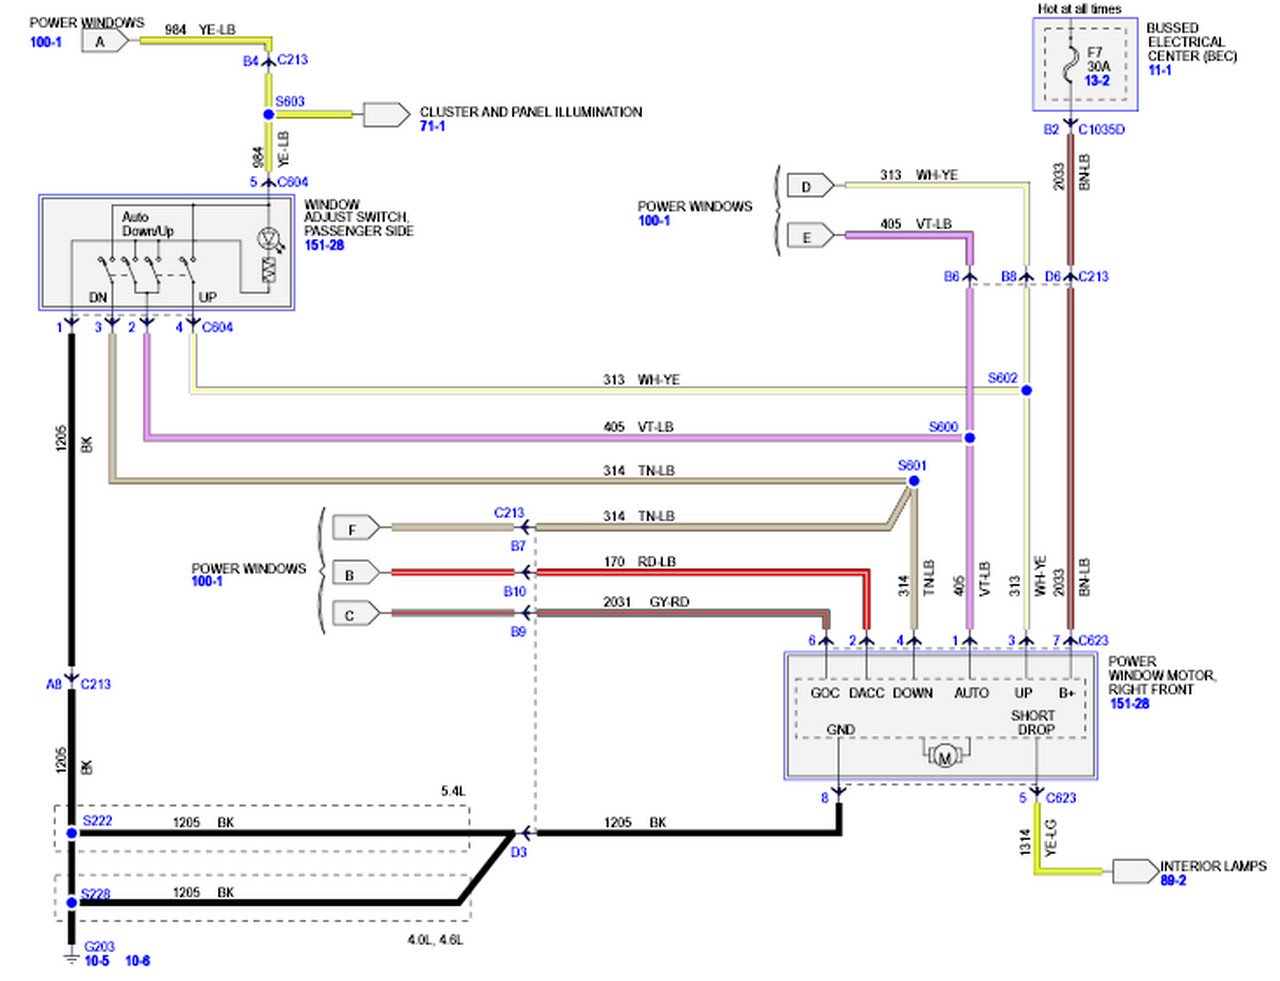 Stupendous 2007 Ford Mustang Dash Wiring Harness Wiring Diagram Wiring Cloud Xortanetembamohammedshrineorg